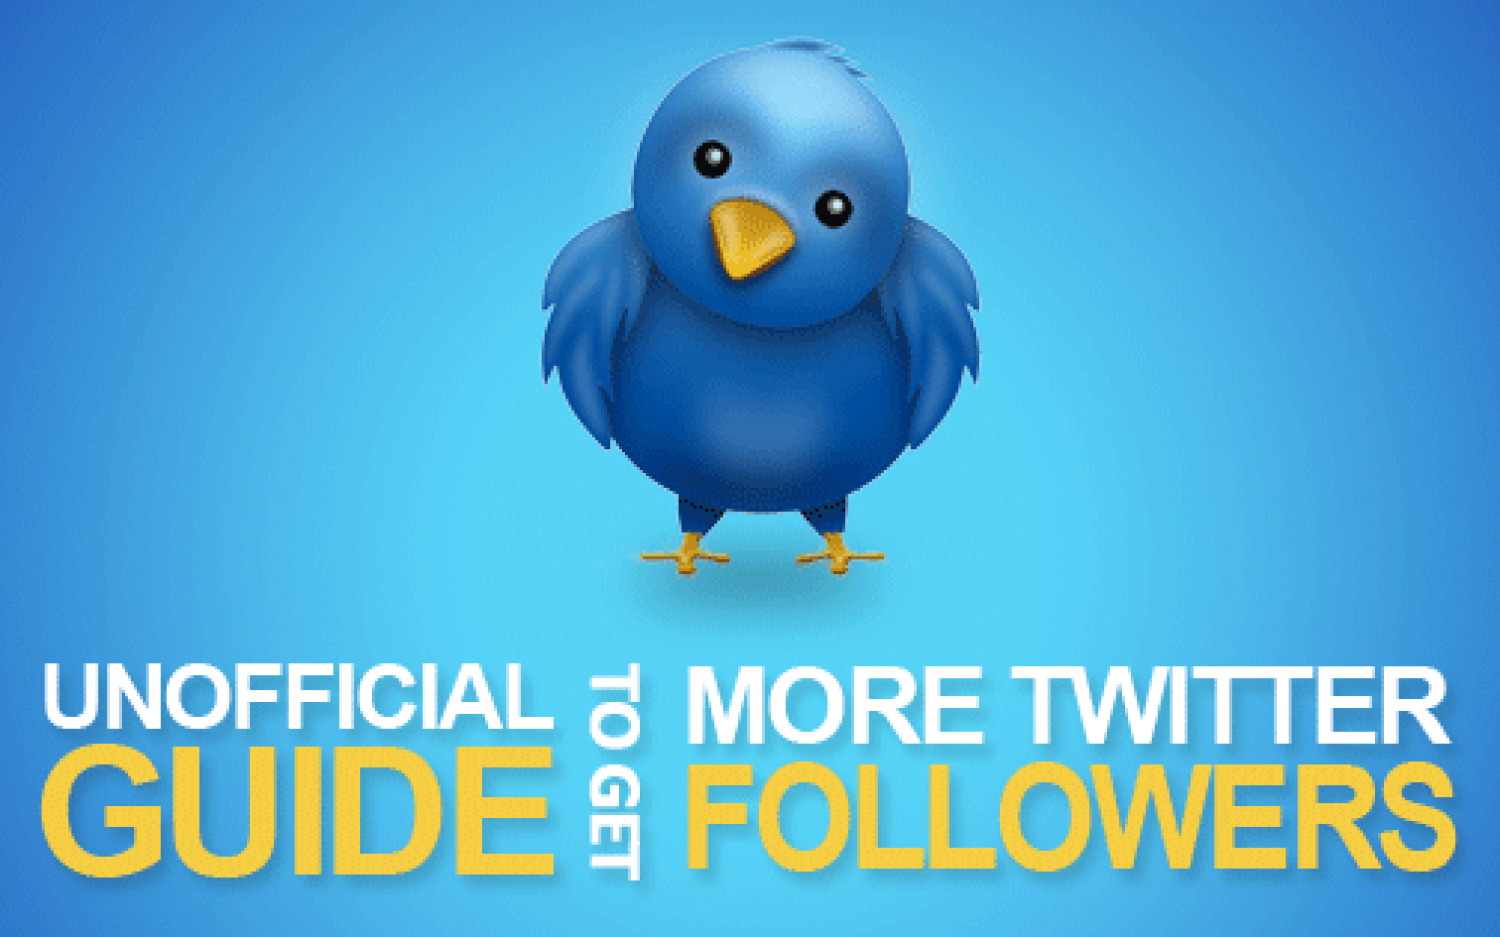 The Unofficial Guide To Get More Twitter Followers Infographic